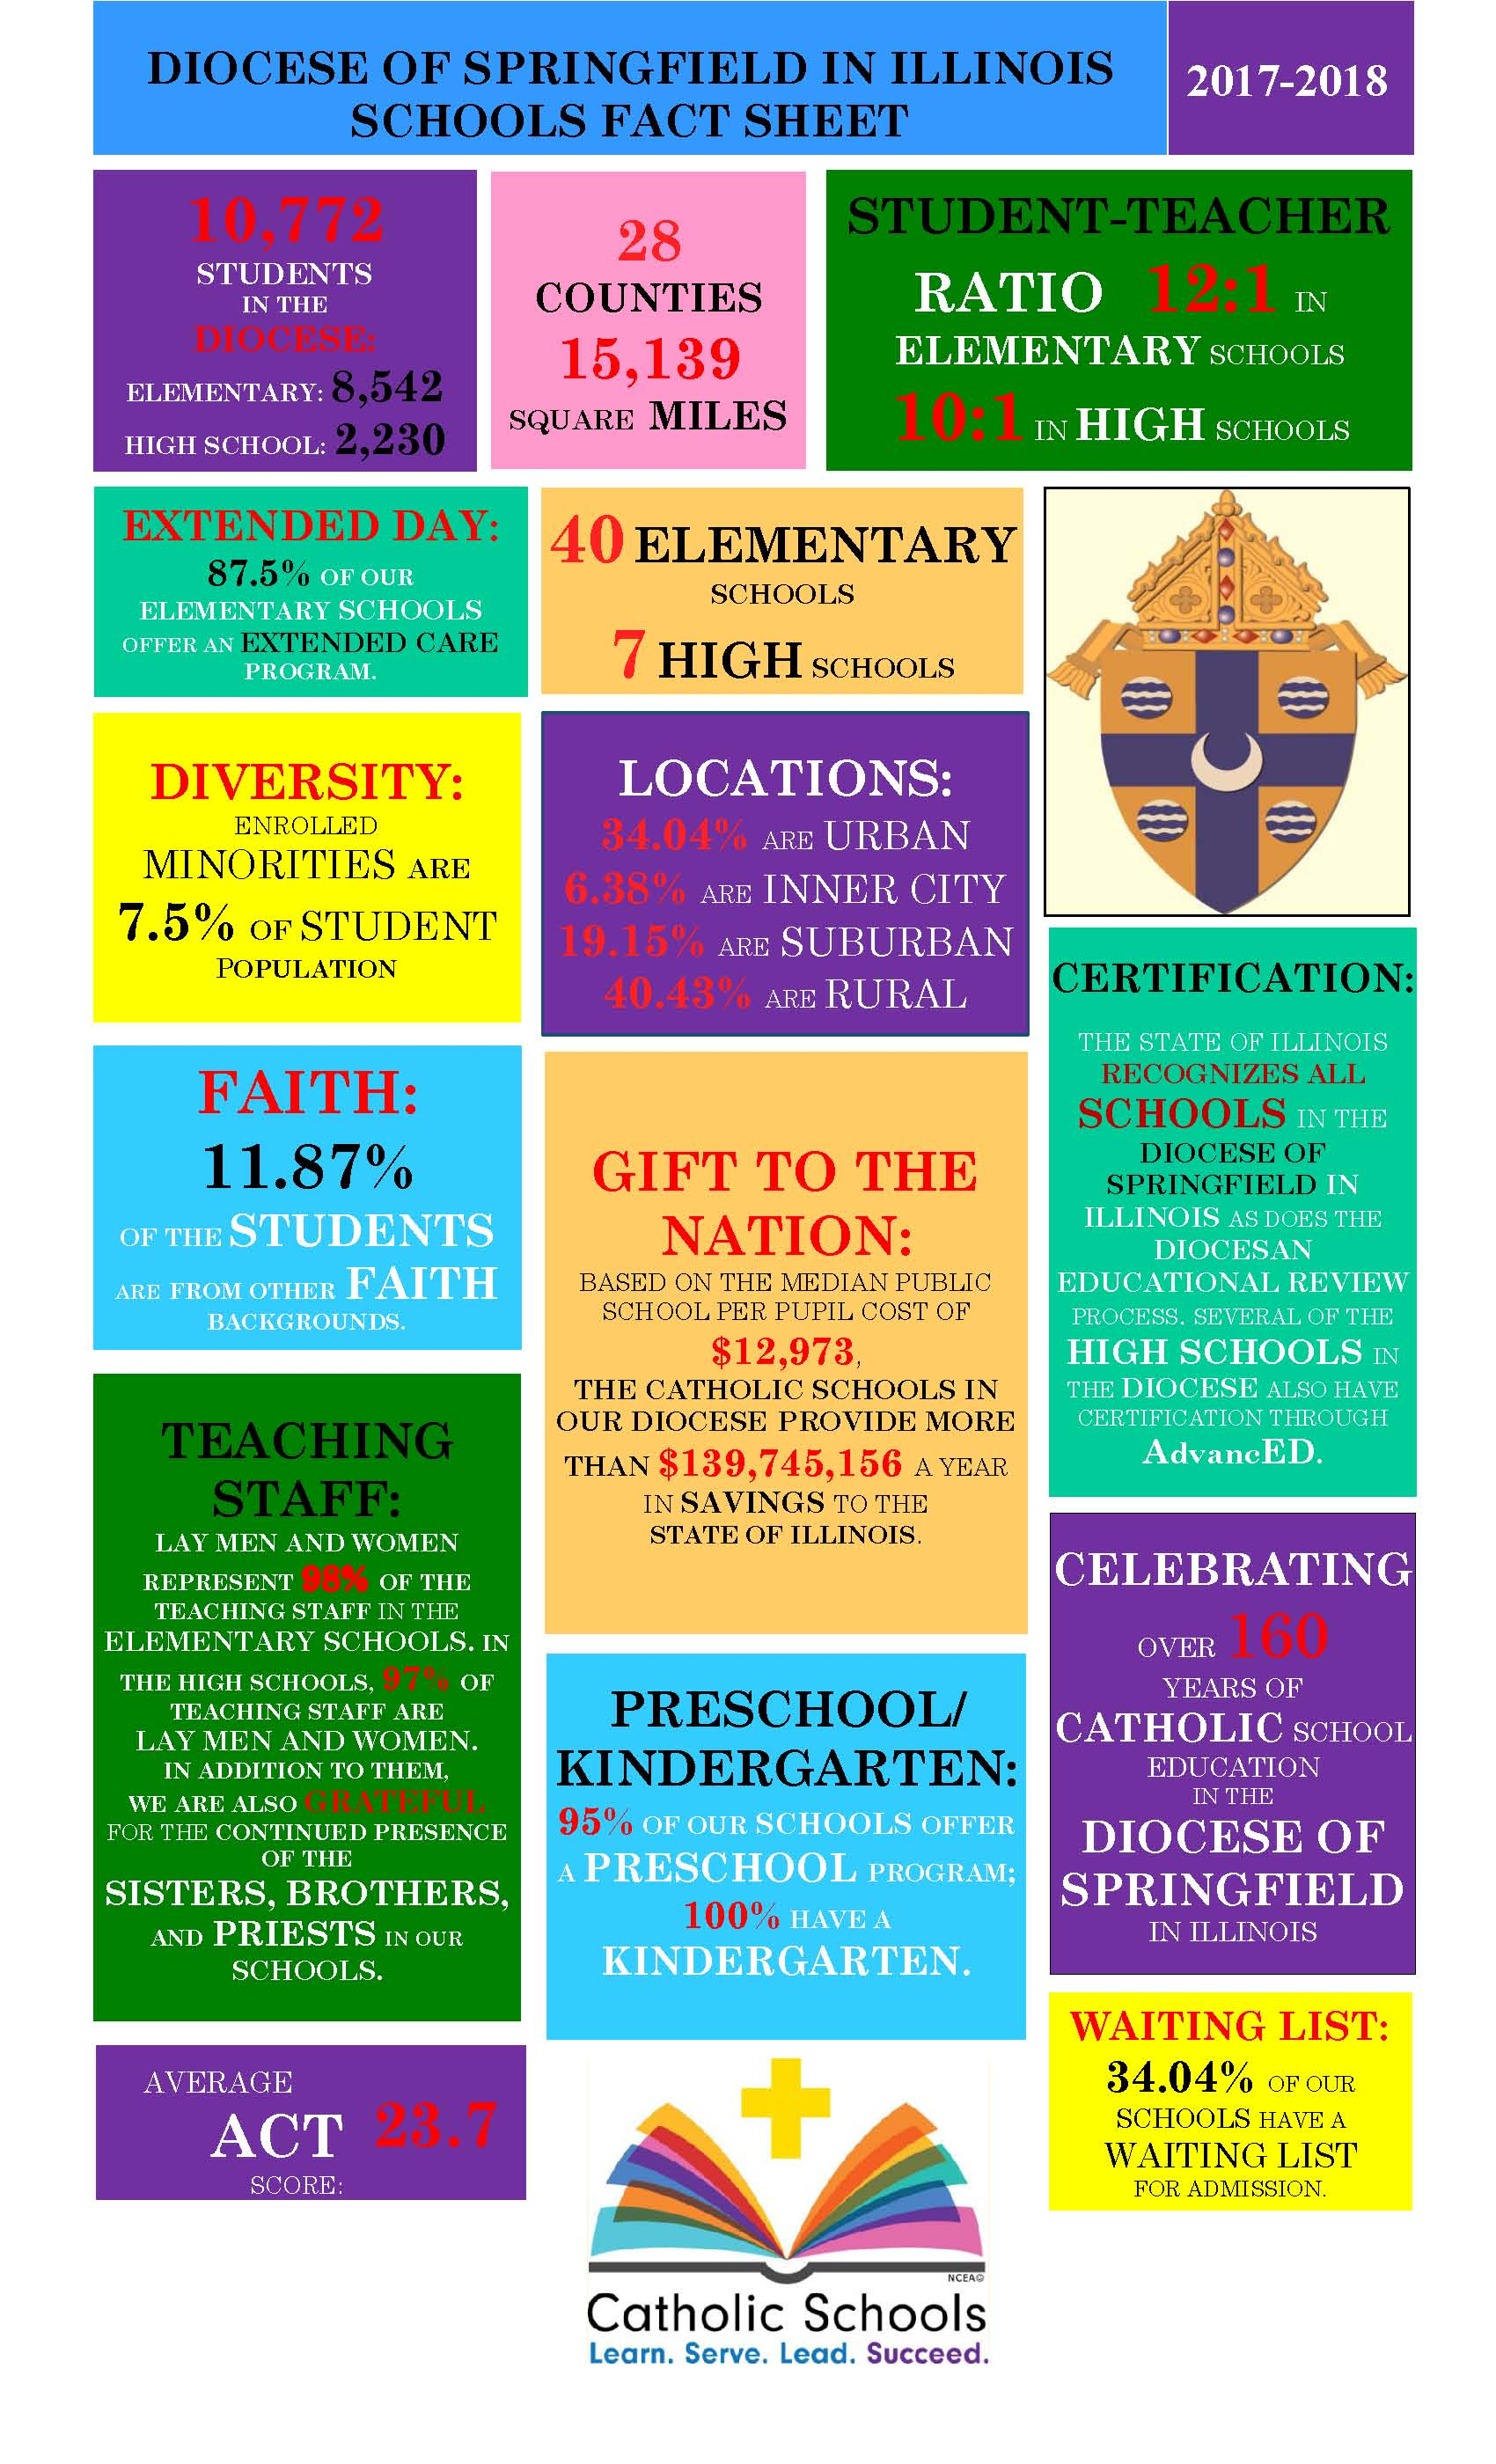 About our schools diocese of springfield in illinois 2017 2018 fact sheet color block 1betcityfo Choice Image